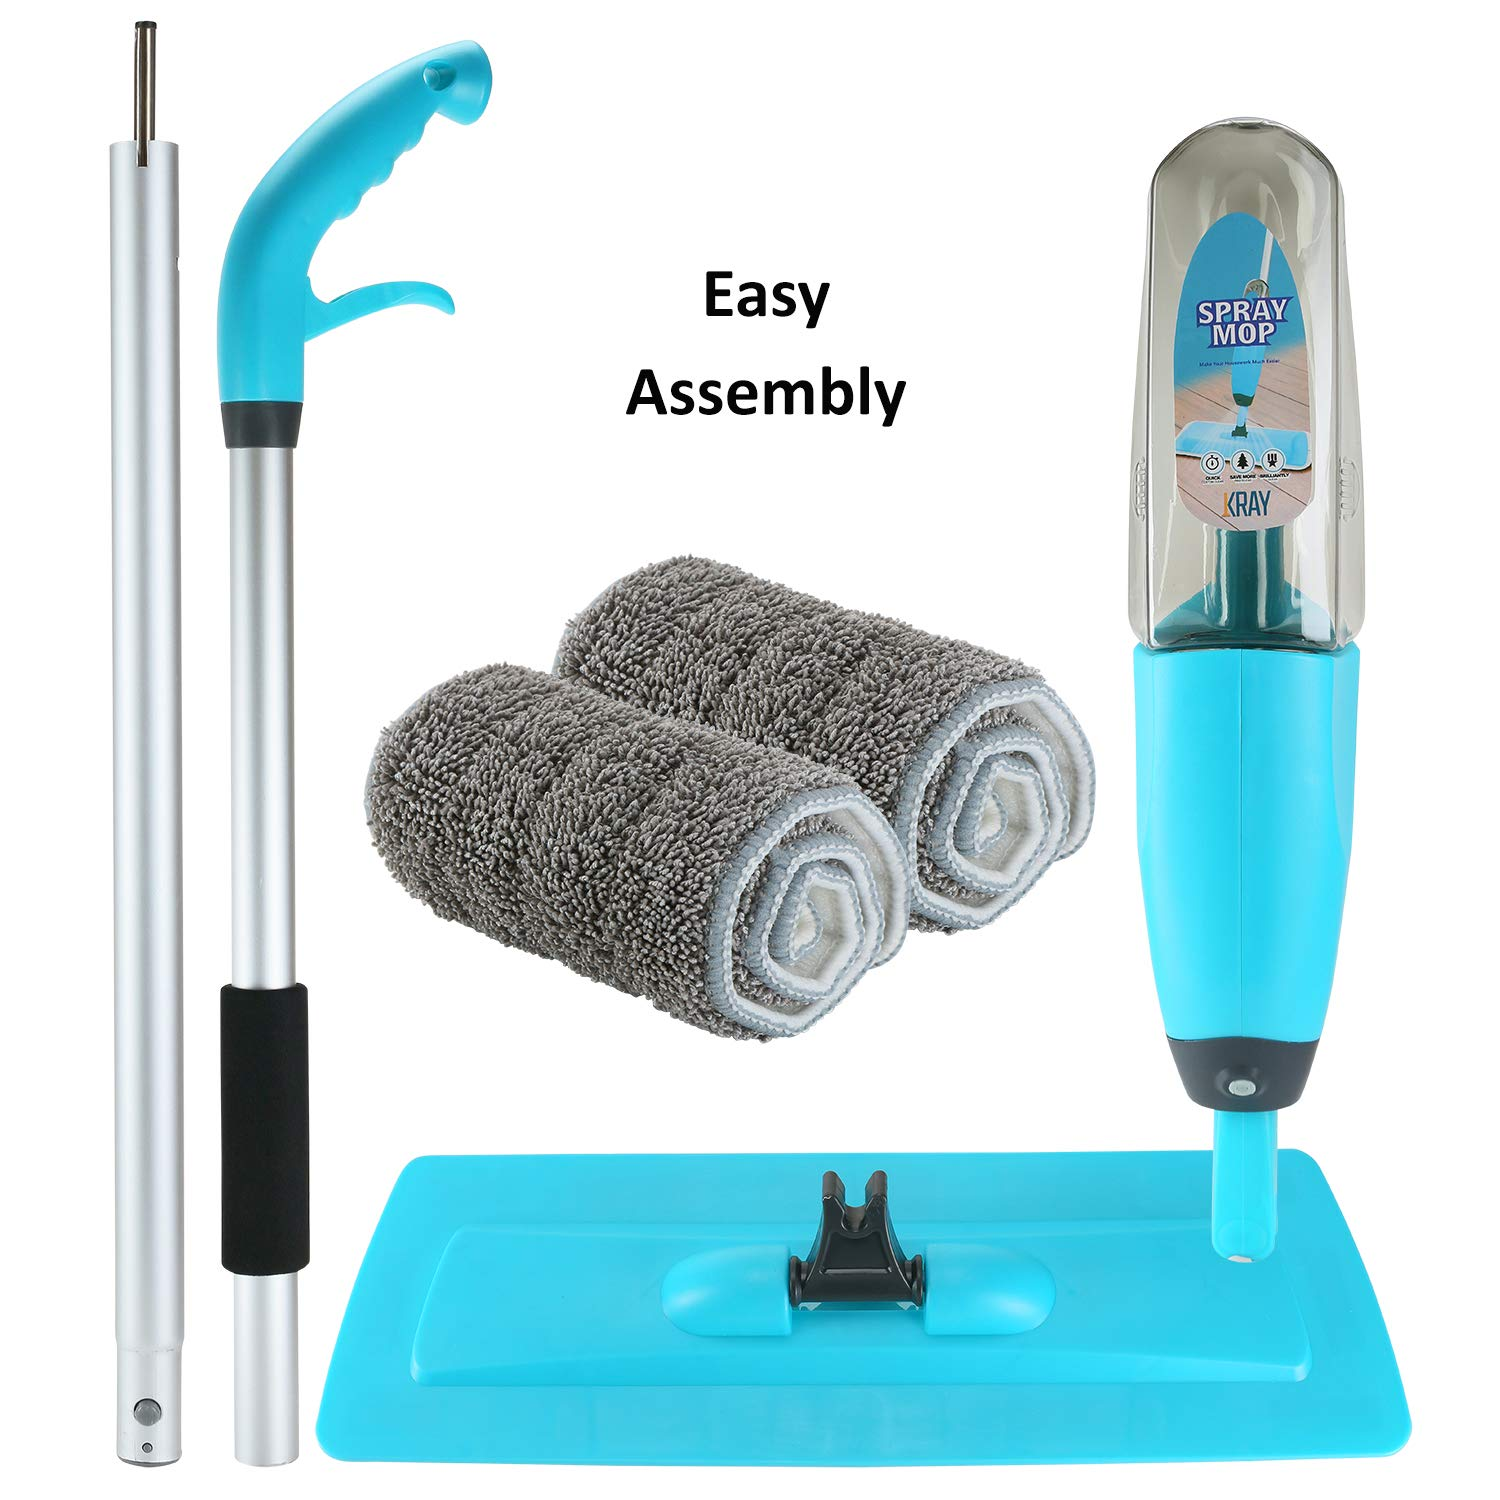 Spray Mop Strongest Heaviest Duty Mop - Best Floor Mop Easy To Use - 360 Spin Non Scratch Microfiber Mop With Integrated Sprayer - Includes Refillable 700ml Bottle & 2 Reusable Microfiber Pads by Kray by Kray (Image #5)